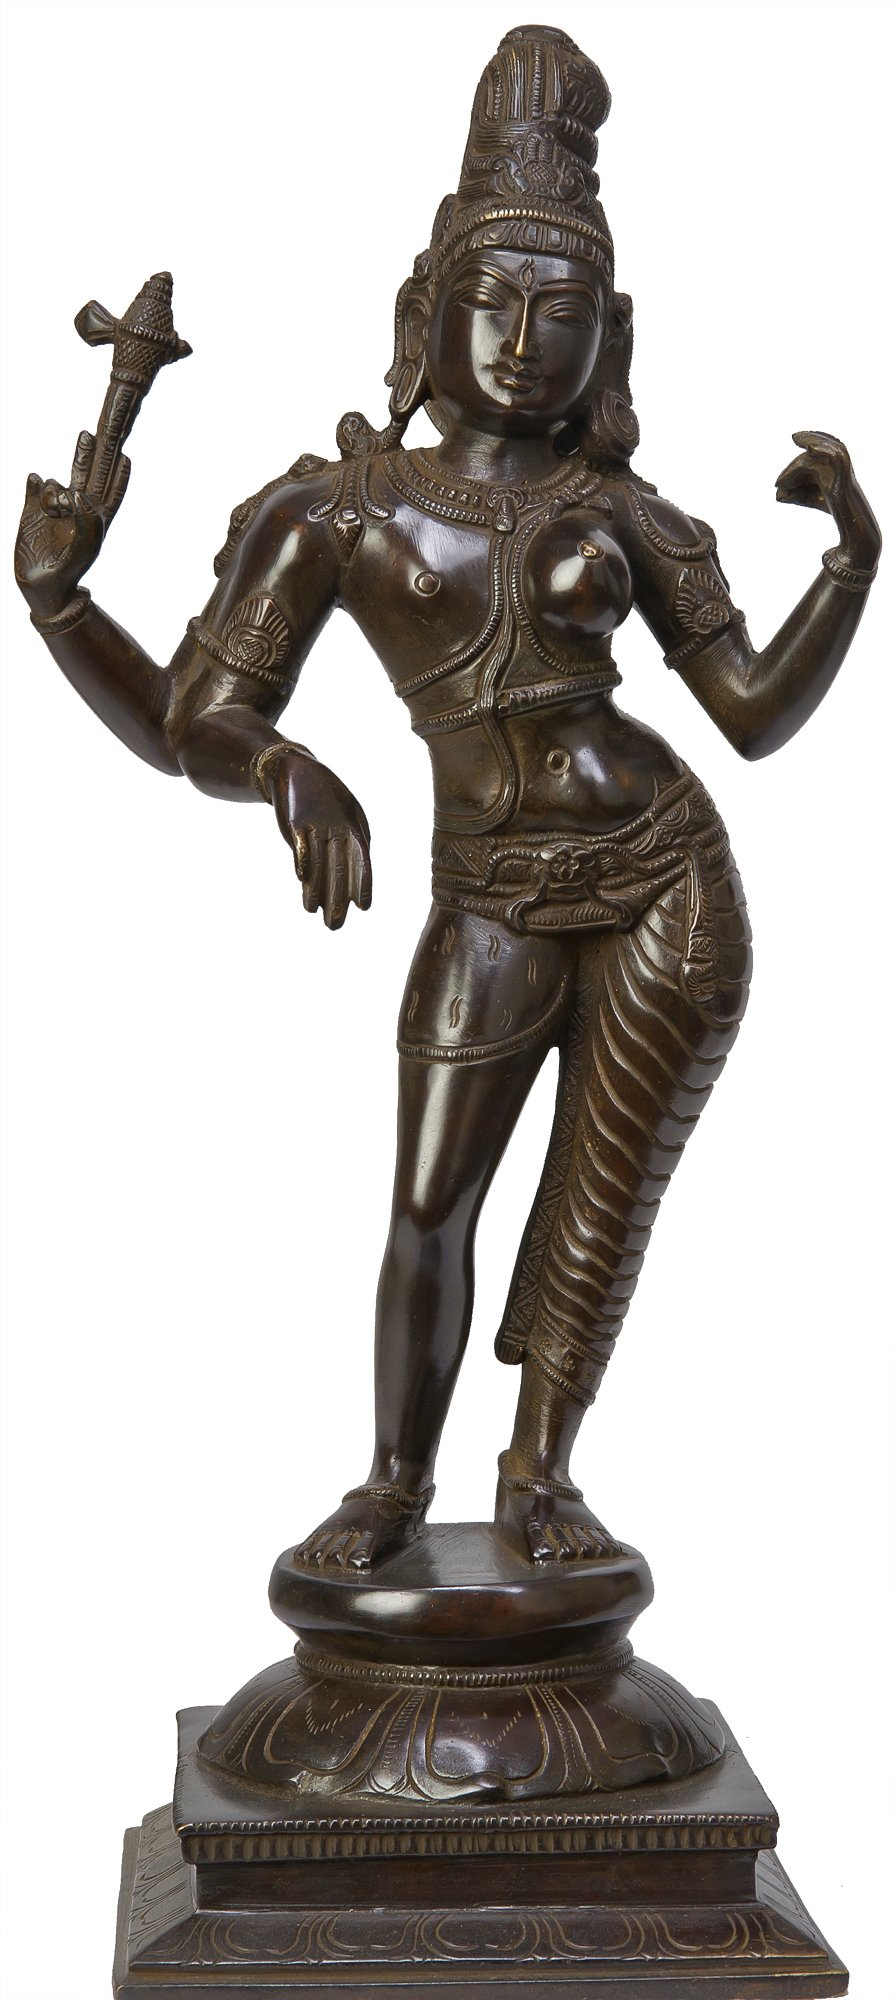 The Most Sacred and Auspicious of All Divine Forms - Brass Sculpture